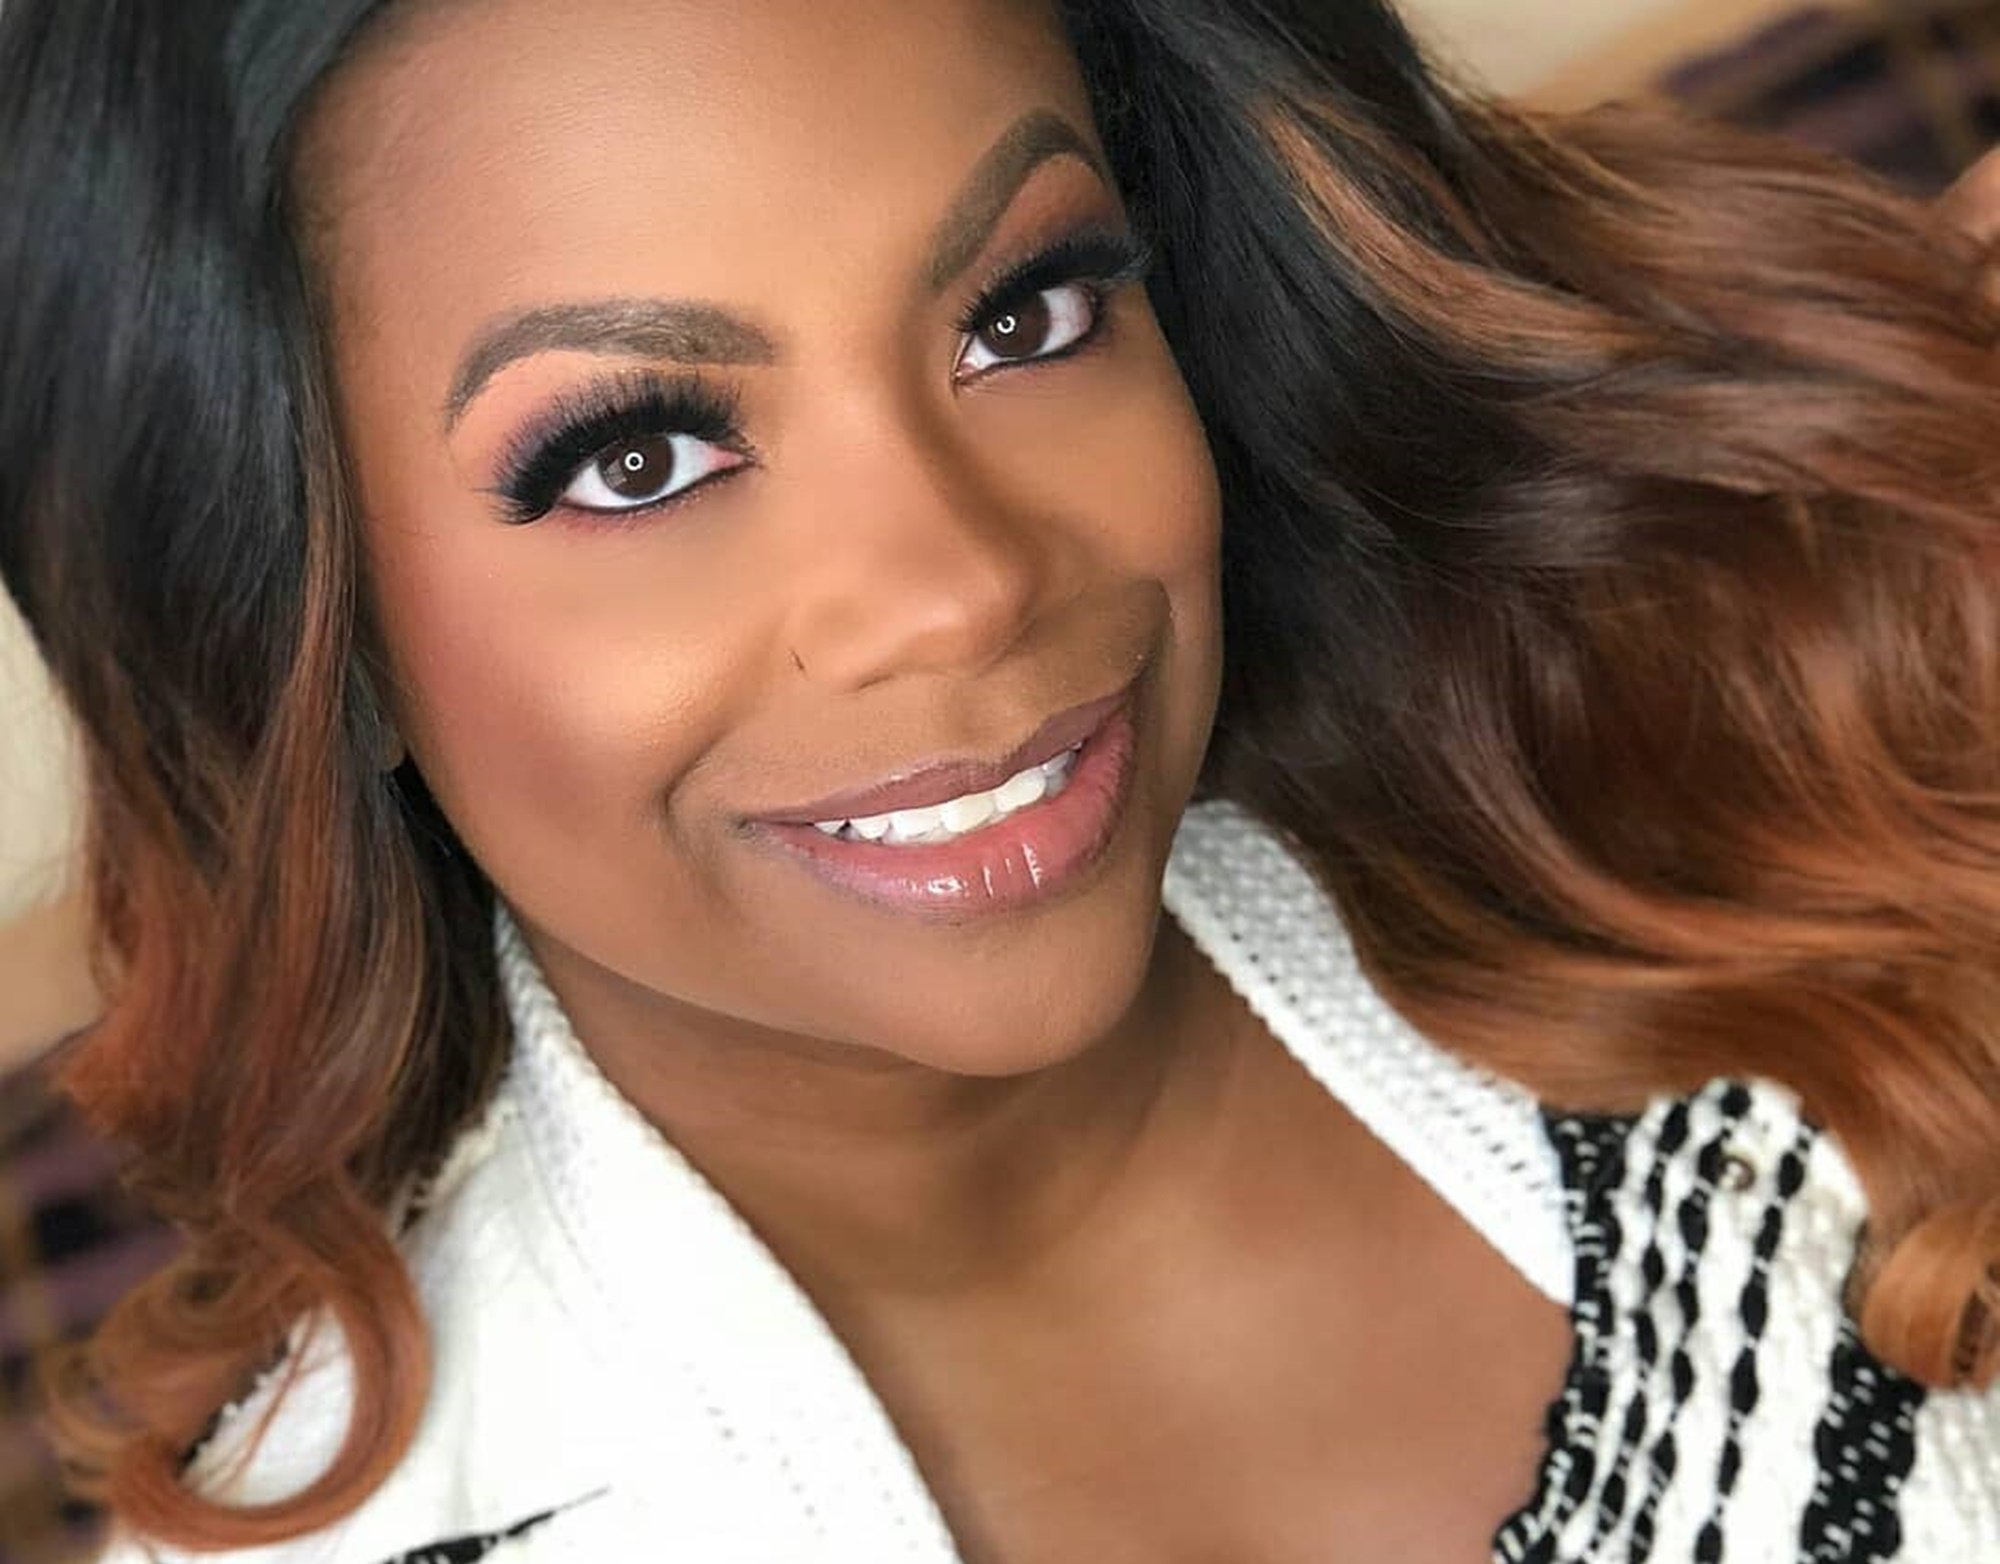 Kandi Burruss' Fans Want To Know Where She Stands Regarding The Whole Mute R. Kelly Movement